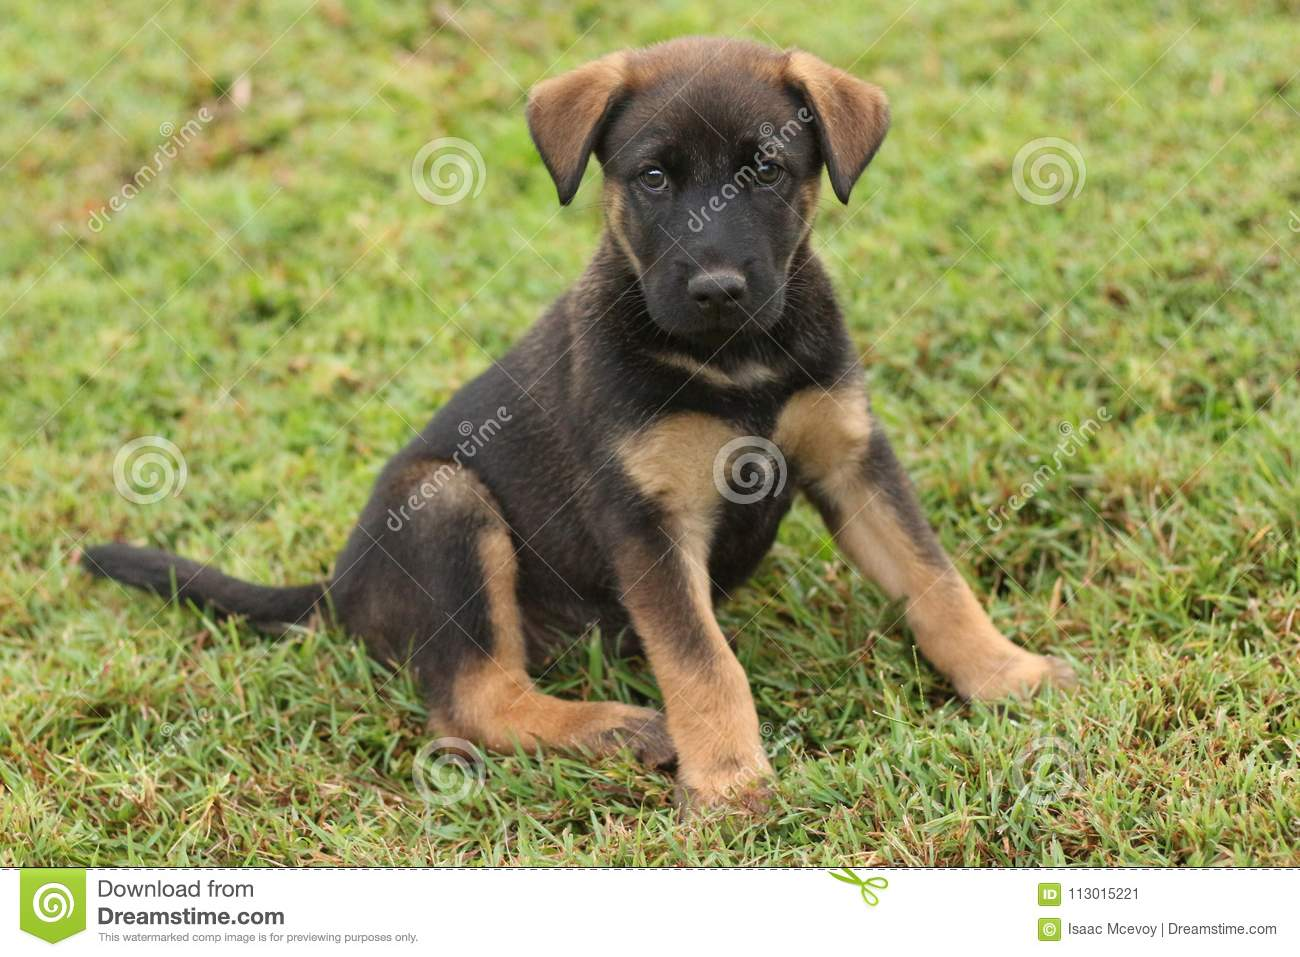 3 140 Brown Lab Puppy Photos Free Royalty Free Stock Photos From Dreamstime